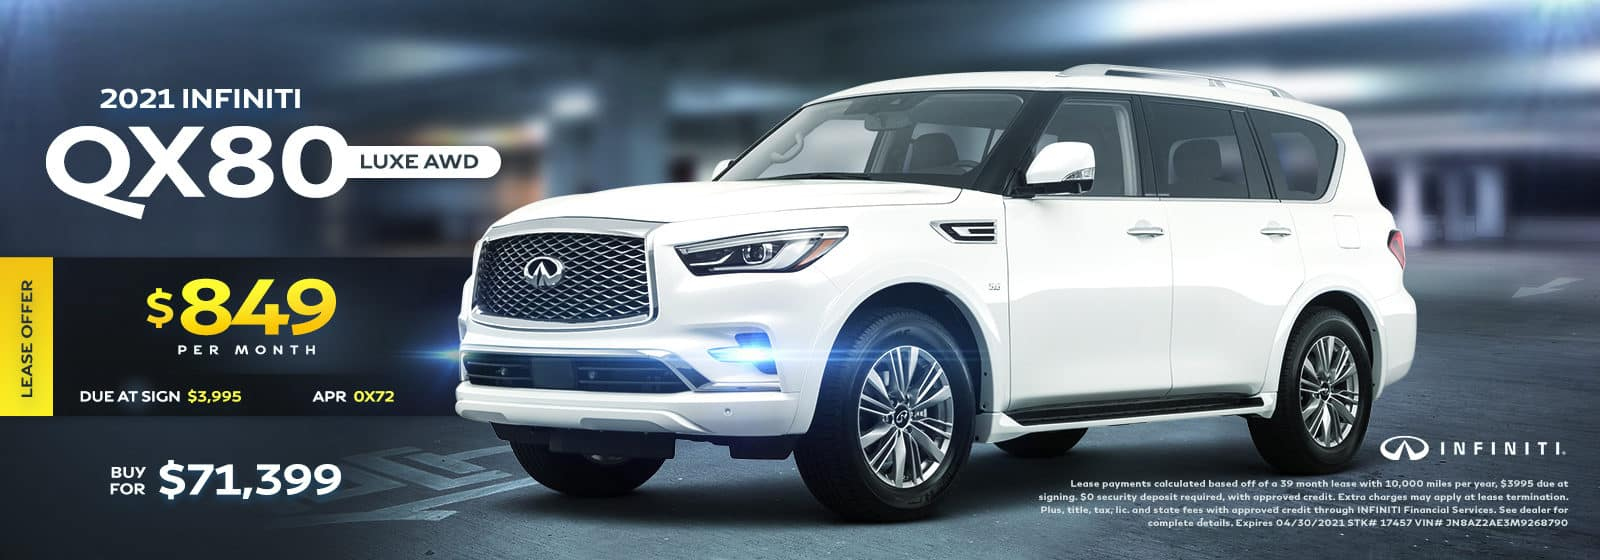 2021 QX80 Luxe AWD April 2021 Offers